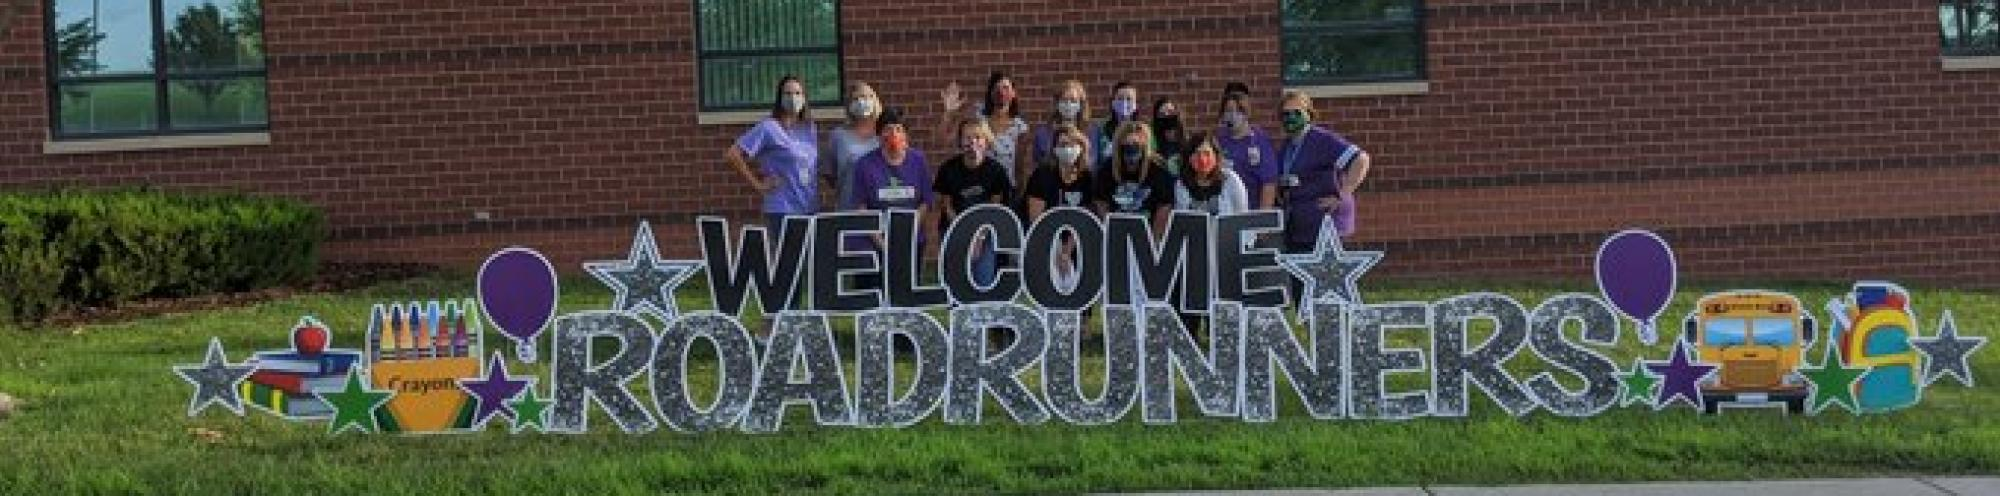 welcome roadrunners